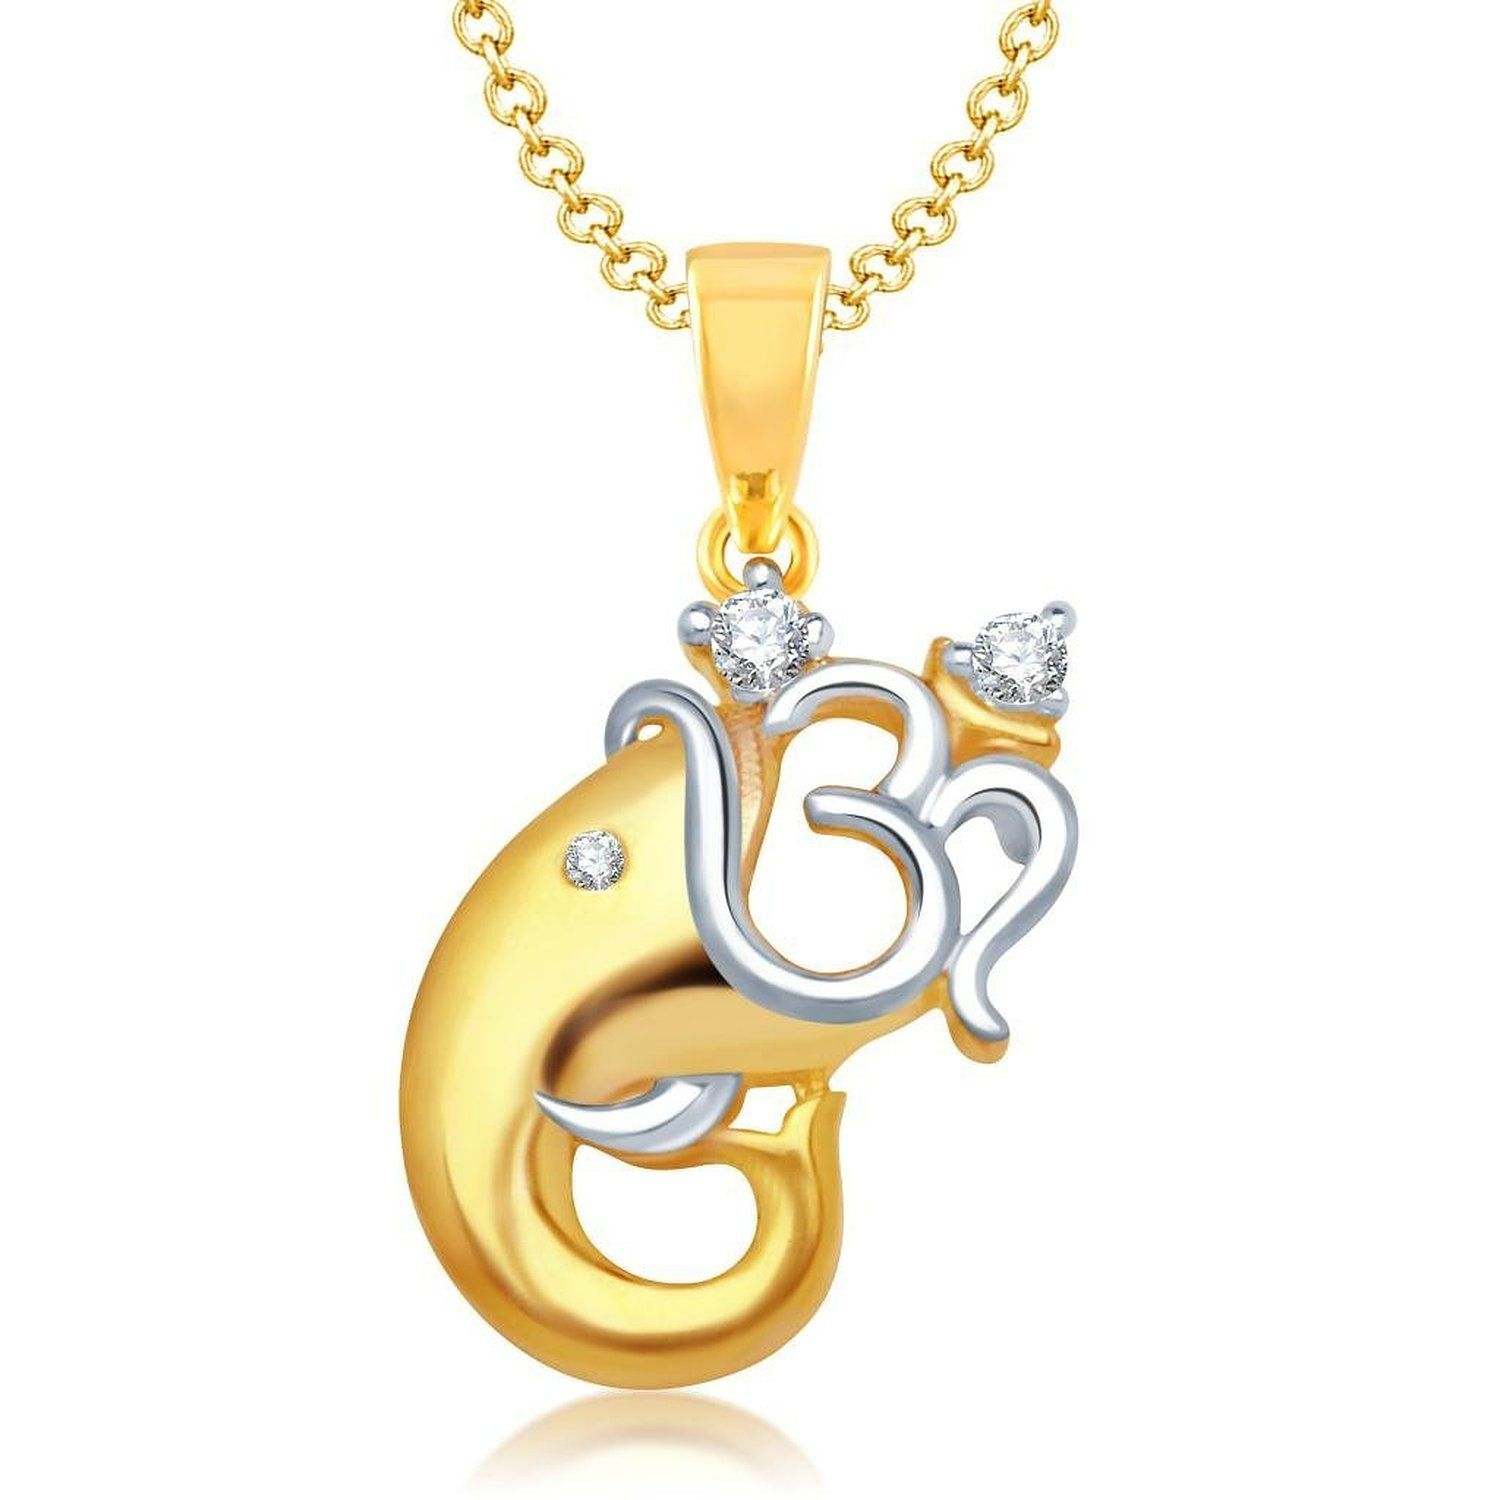 Best Selling Products Jewellery Pinterest